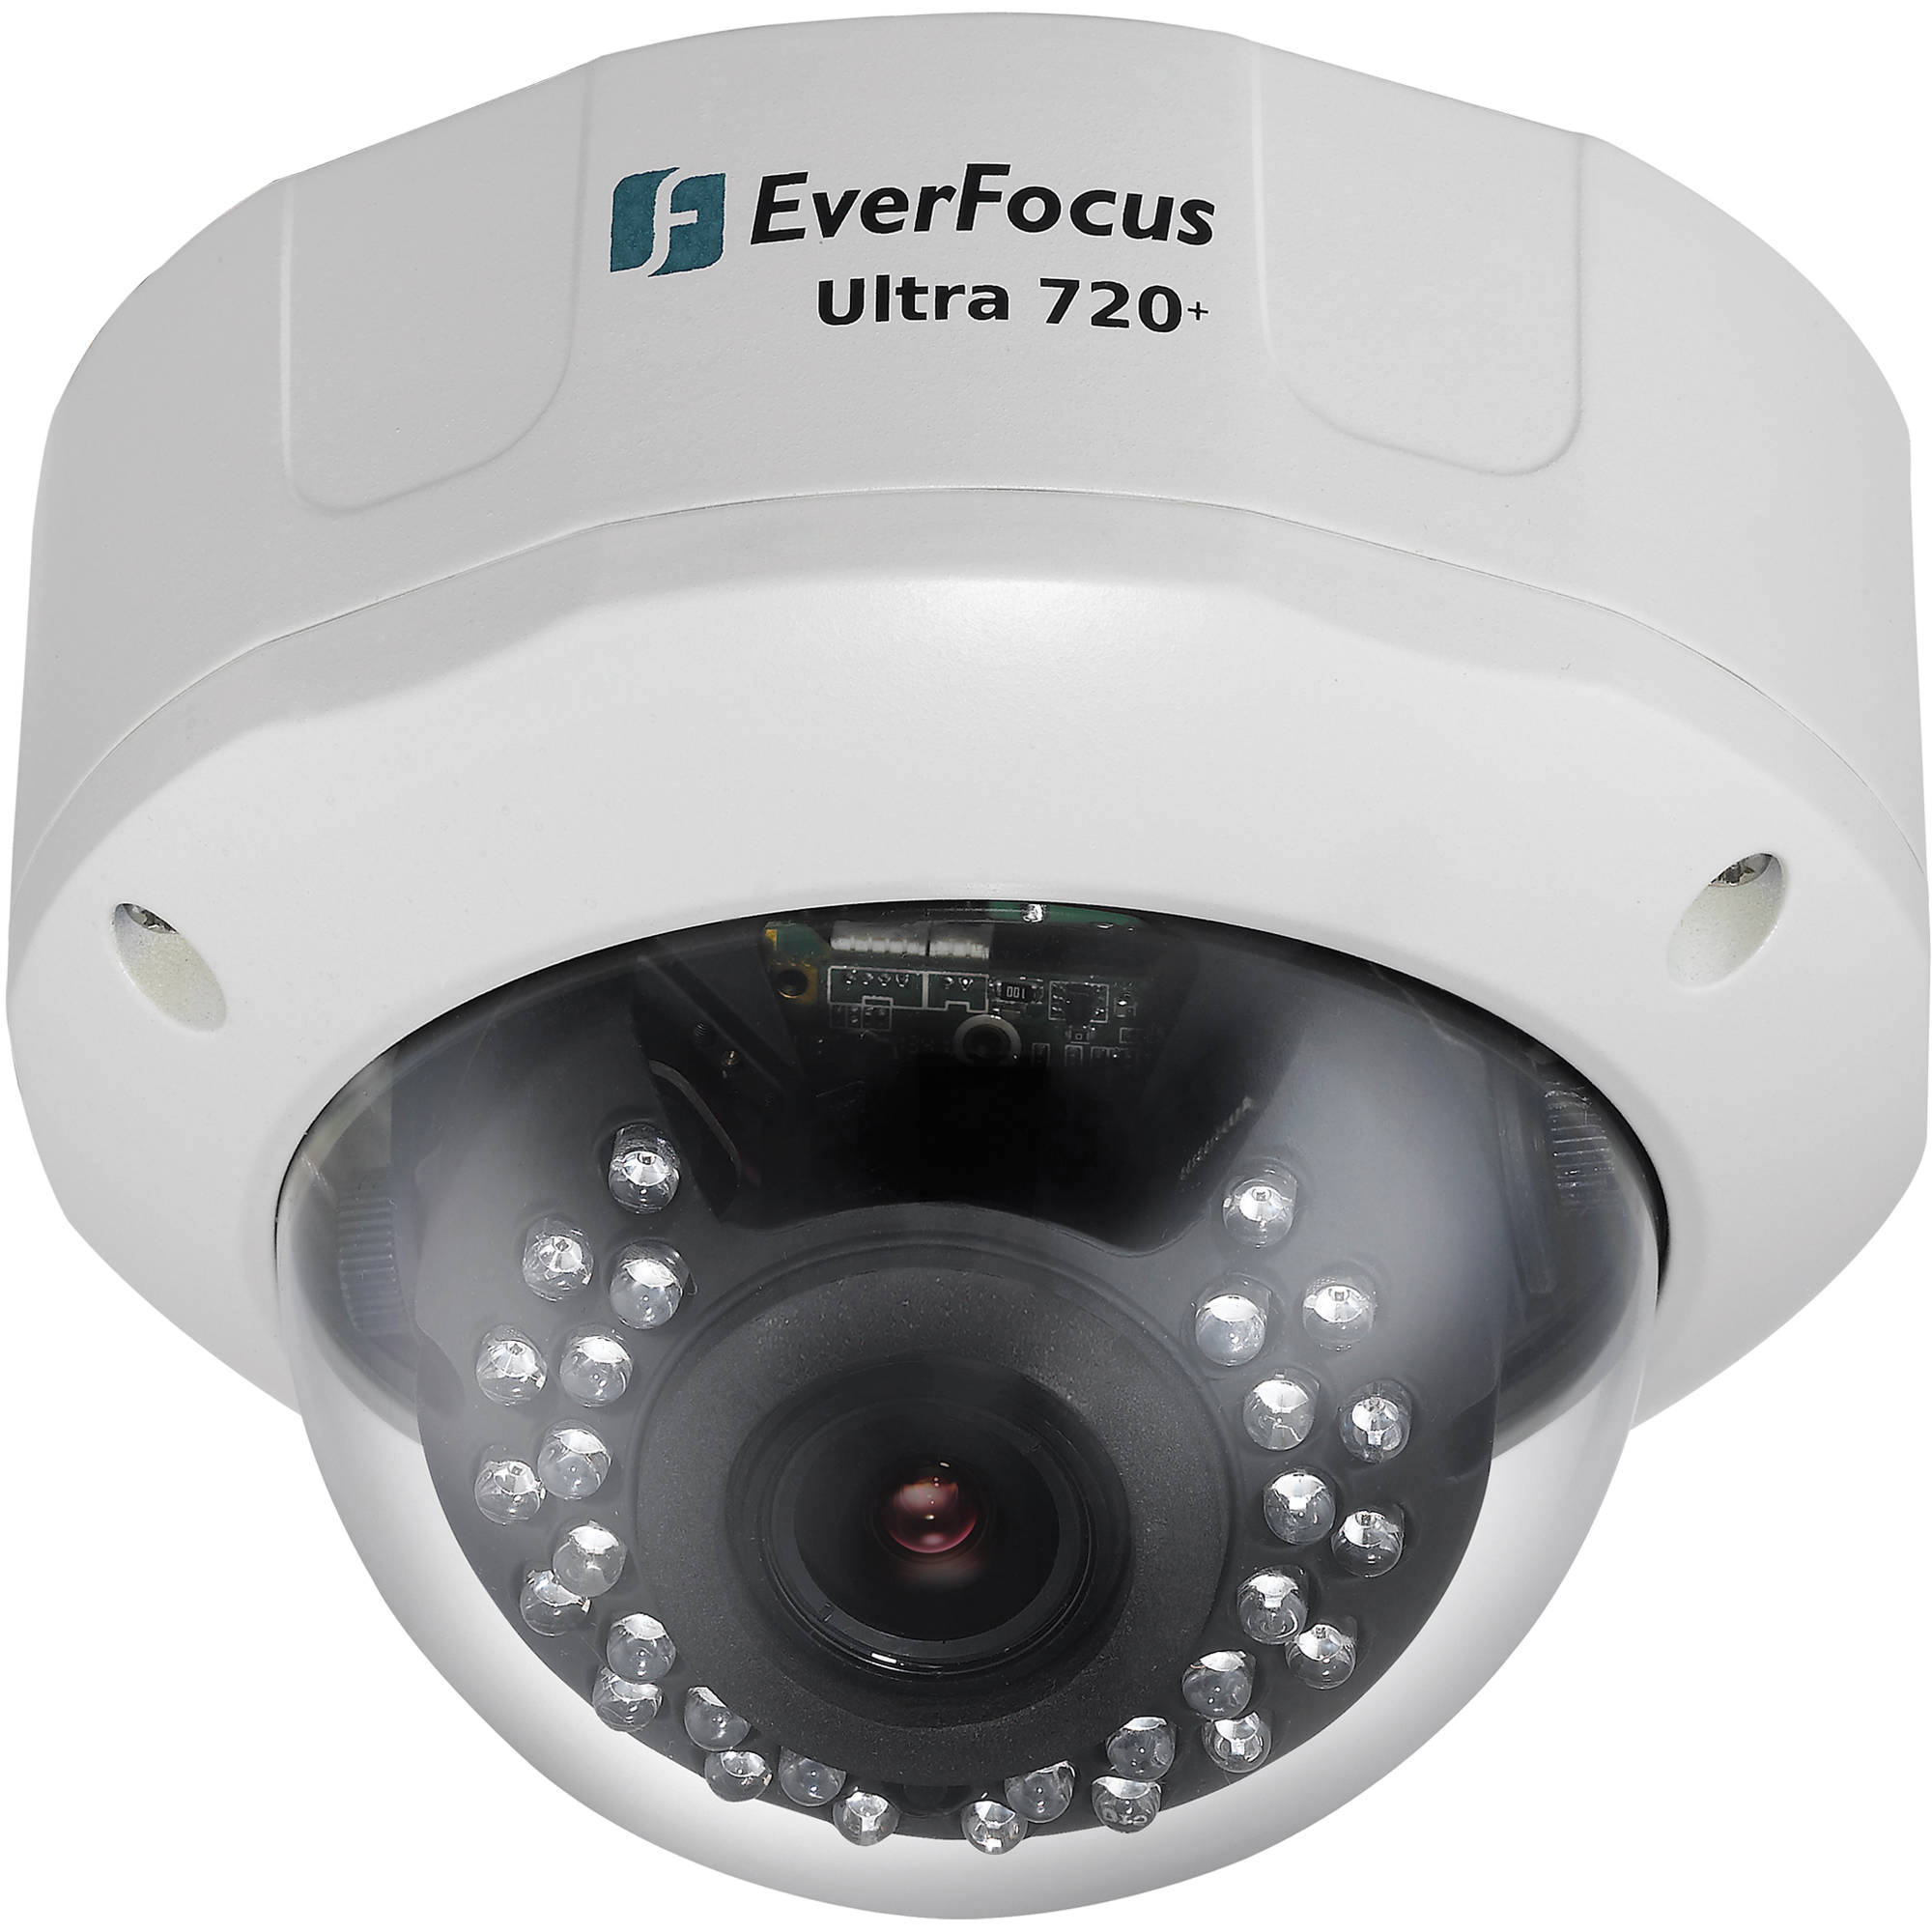 EverFocus EHD700 Outdoor Day/Night Dome Camera with DWDR ...